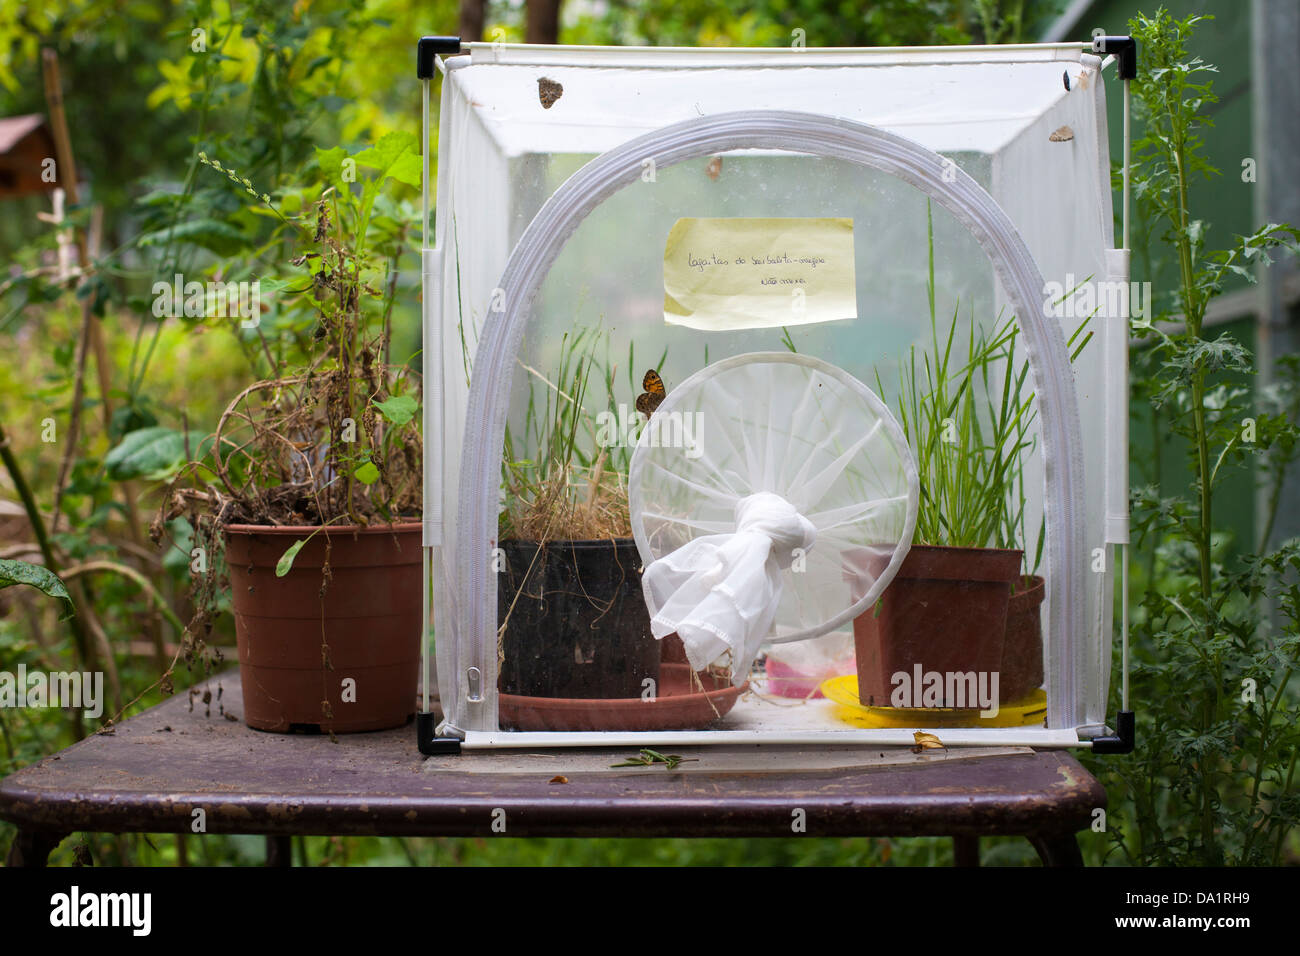 Breeding butterfly cage. - Stock Image